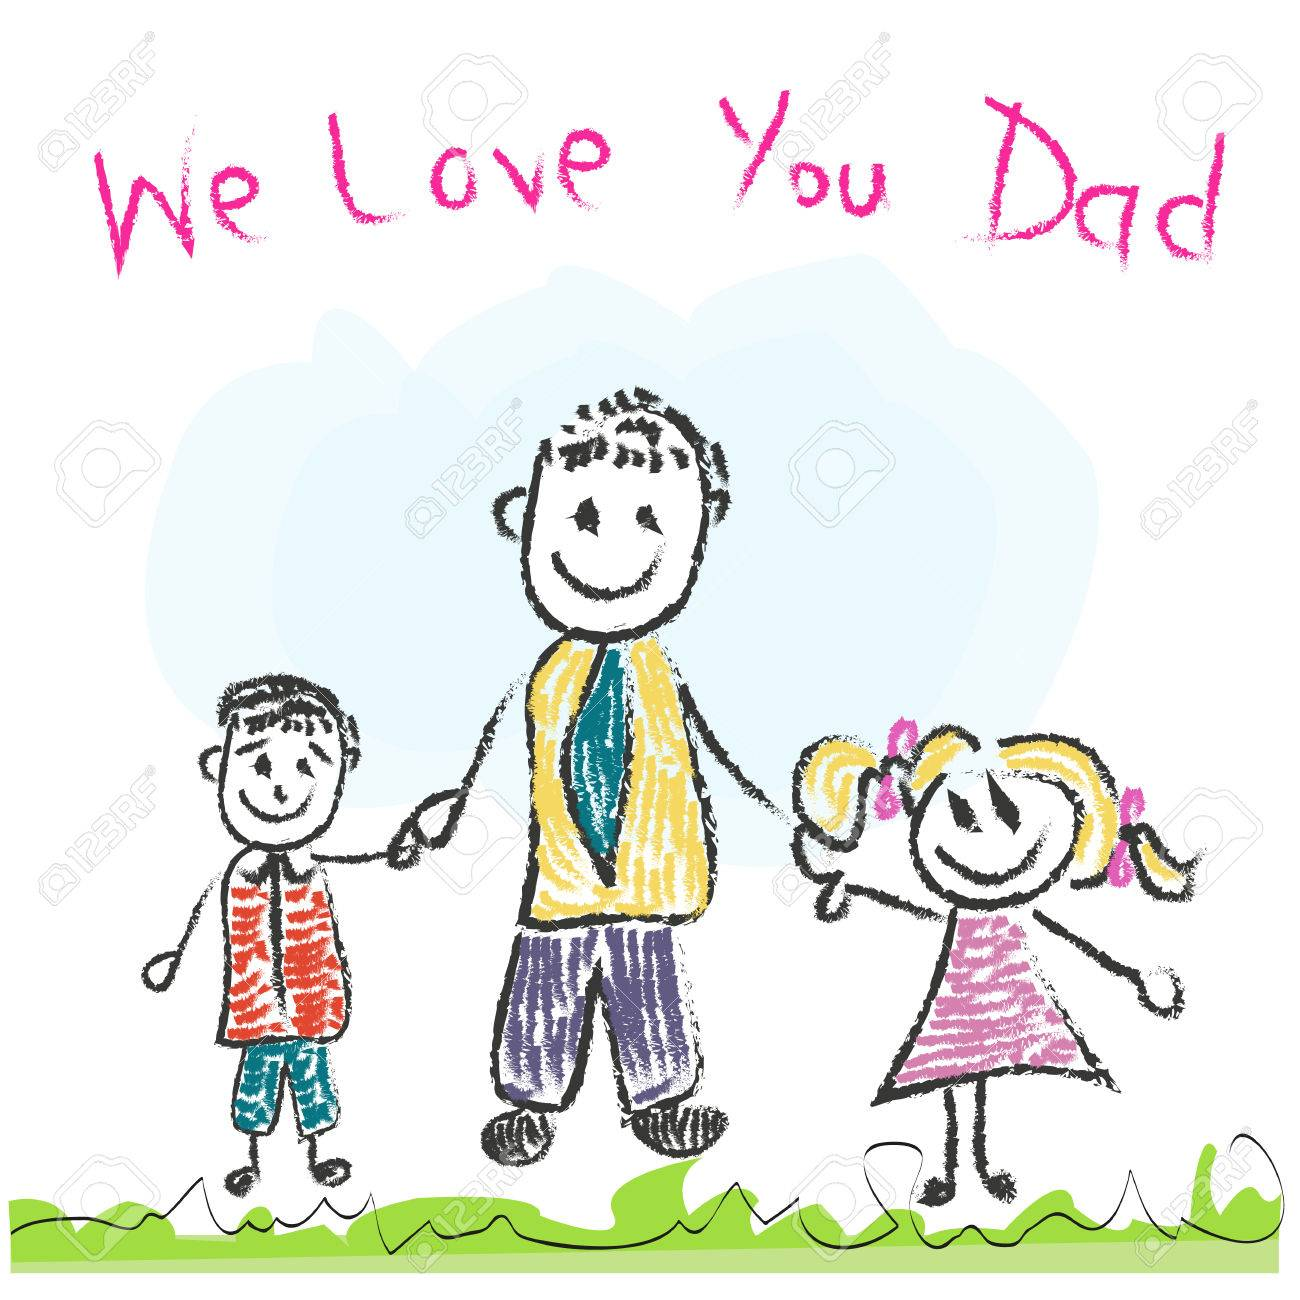 We love you dad fathers day greeting card royalty free cliparts vector we love you dad fathers day greeting card m4hsunfo